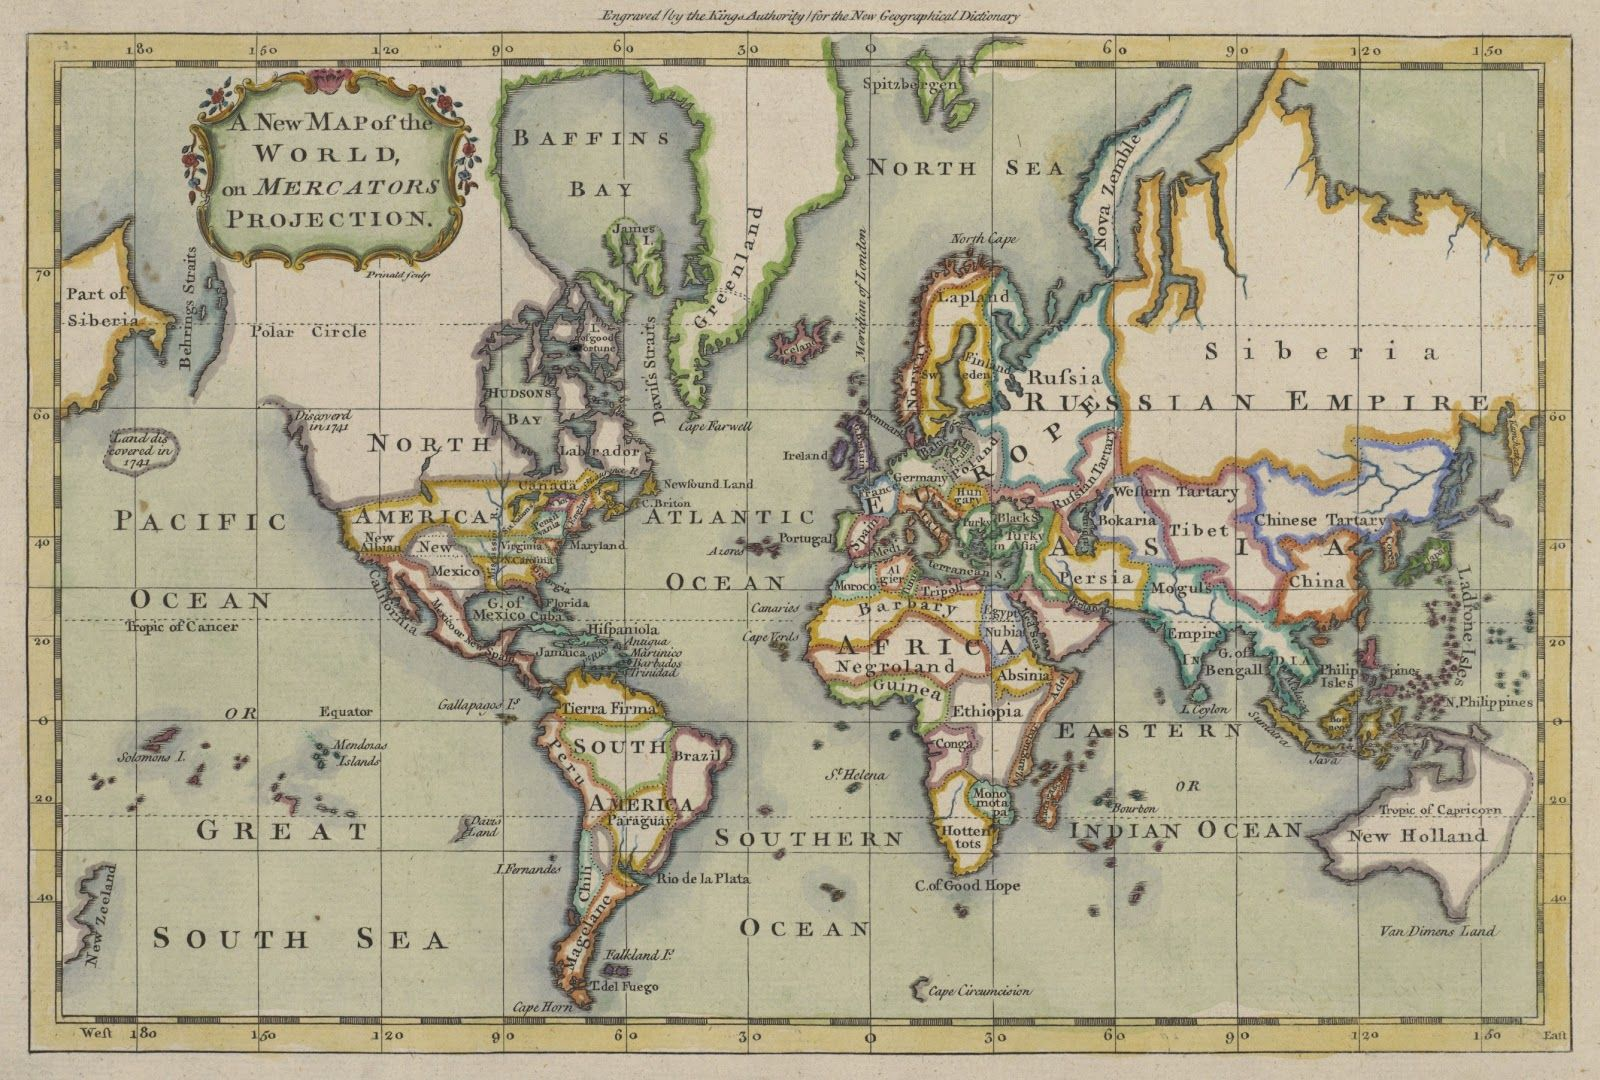 18th Century World Map On Mercartor S Projection Engraved